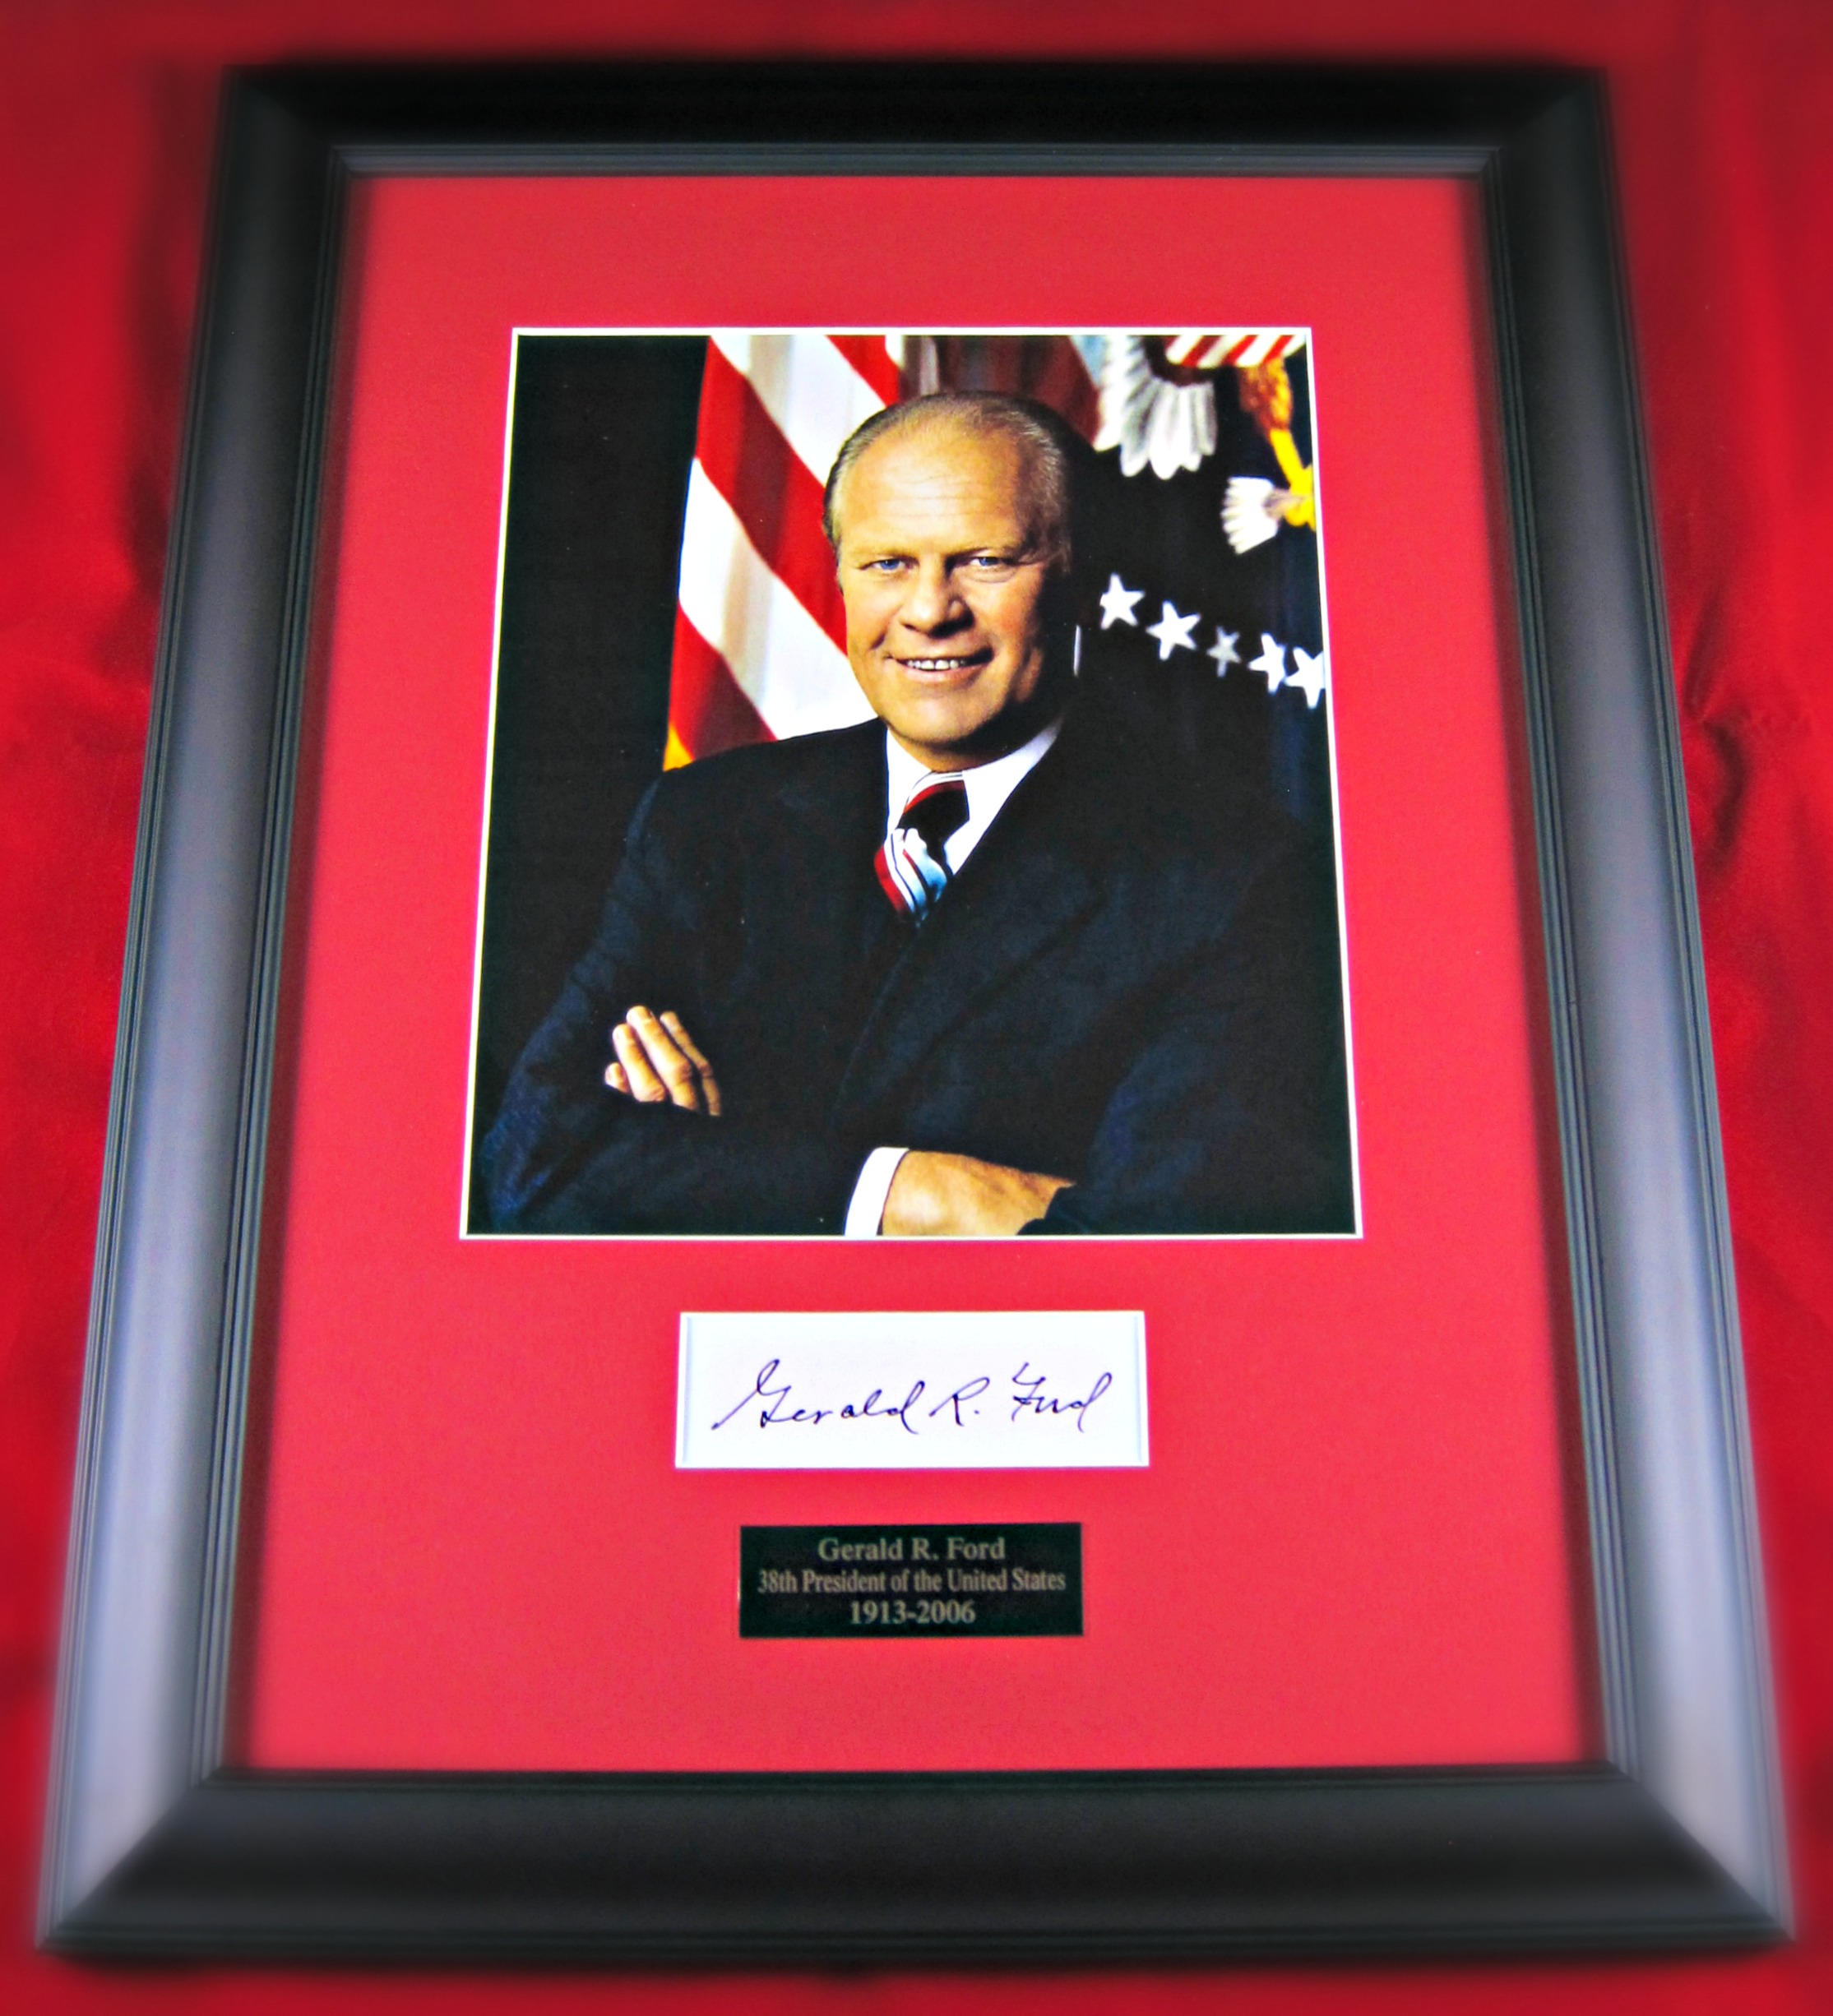 Gerald Ford Framed Signature Display Memorabilia Center